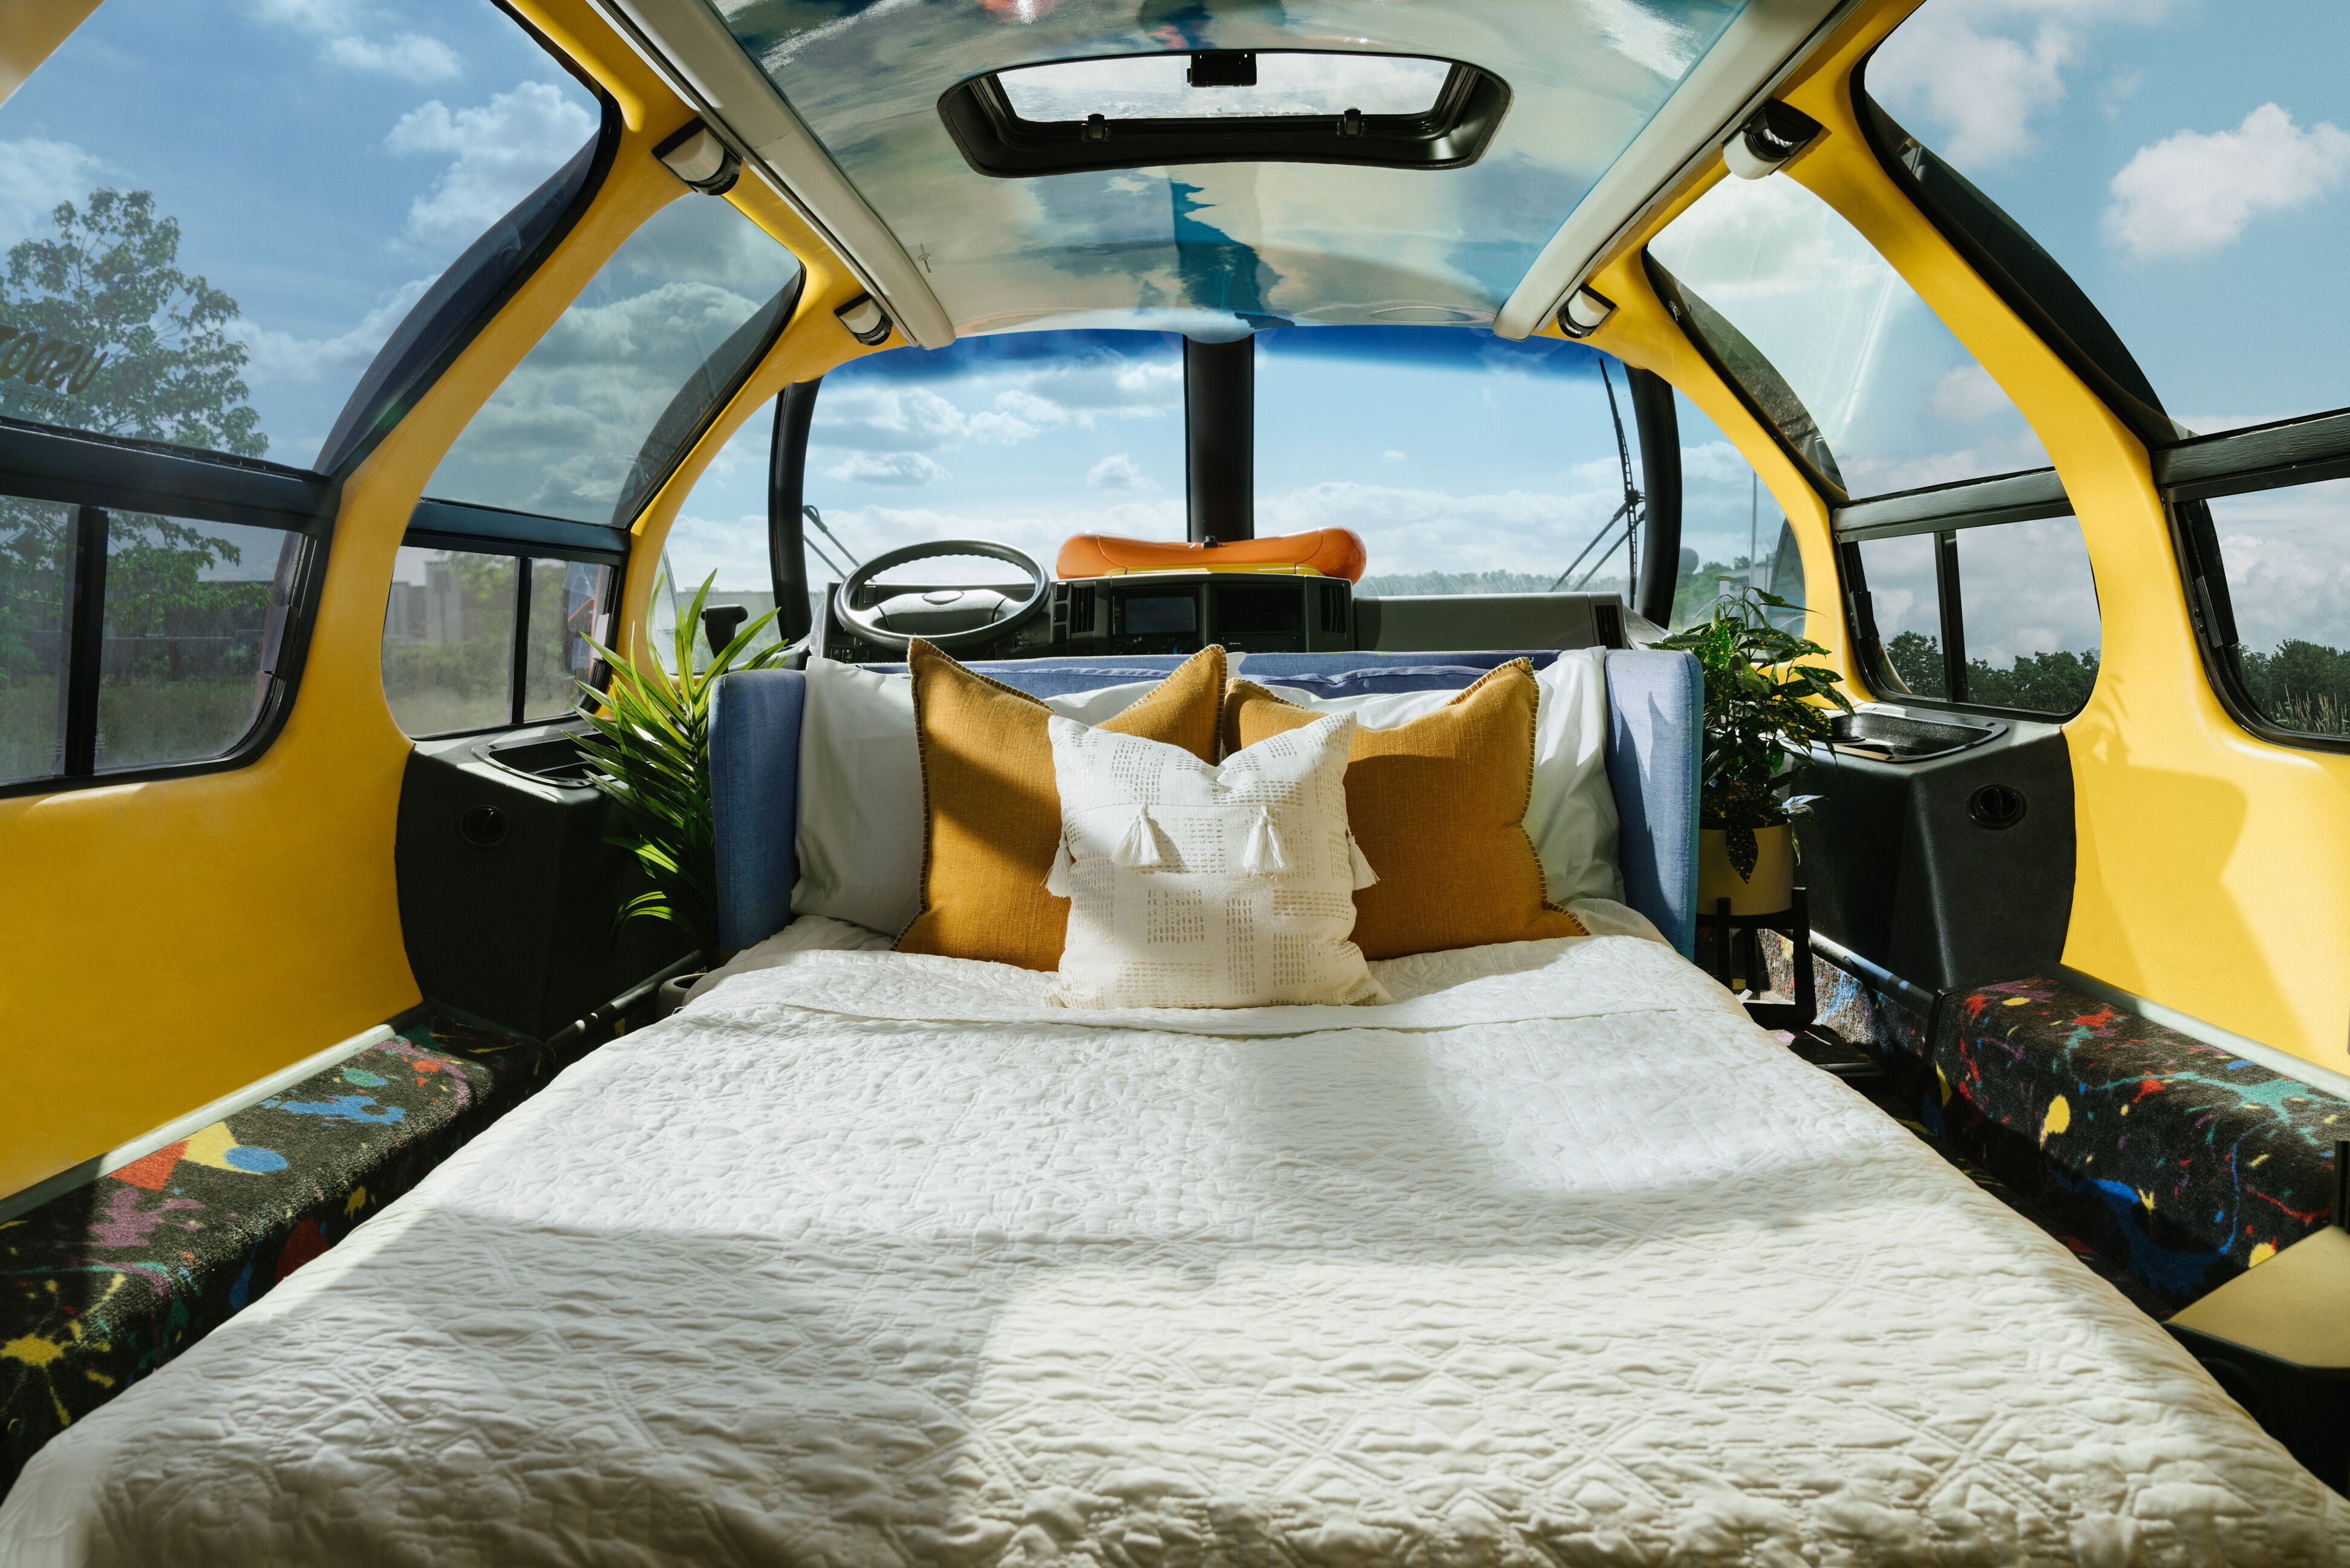 How To Stay In The Oscar Mayer Wienermobile On Airbnb